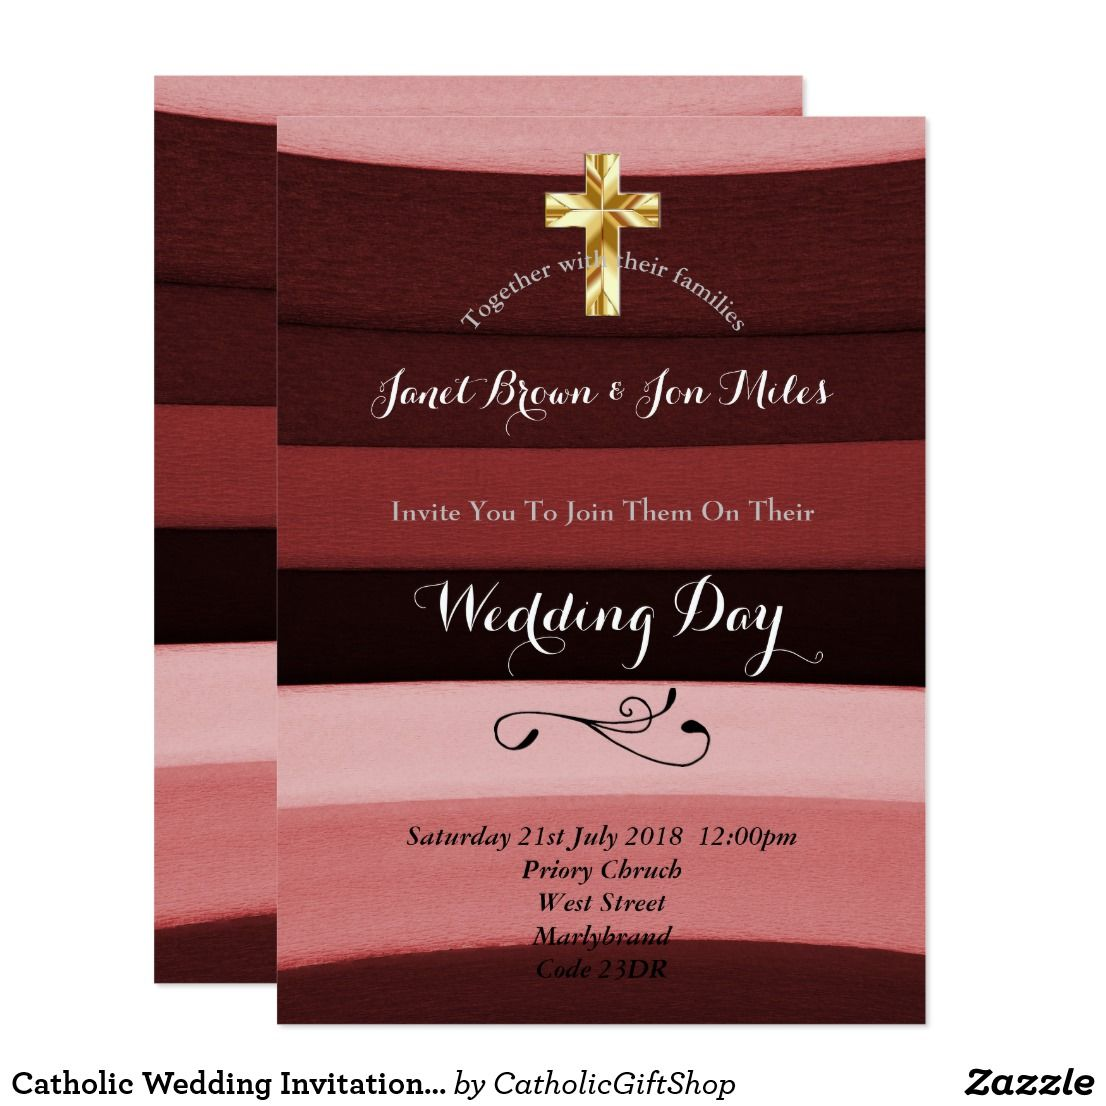 Catholic Wedding Invitation Burgundy Stripes | Trending Wedding ...